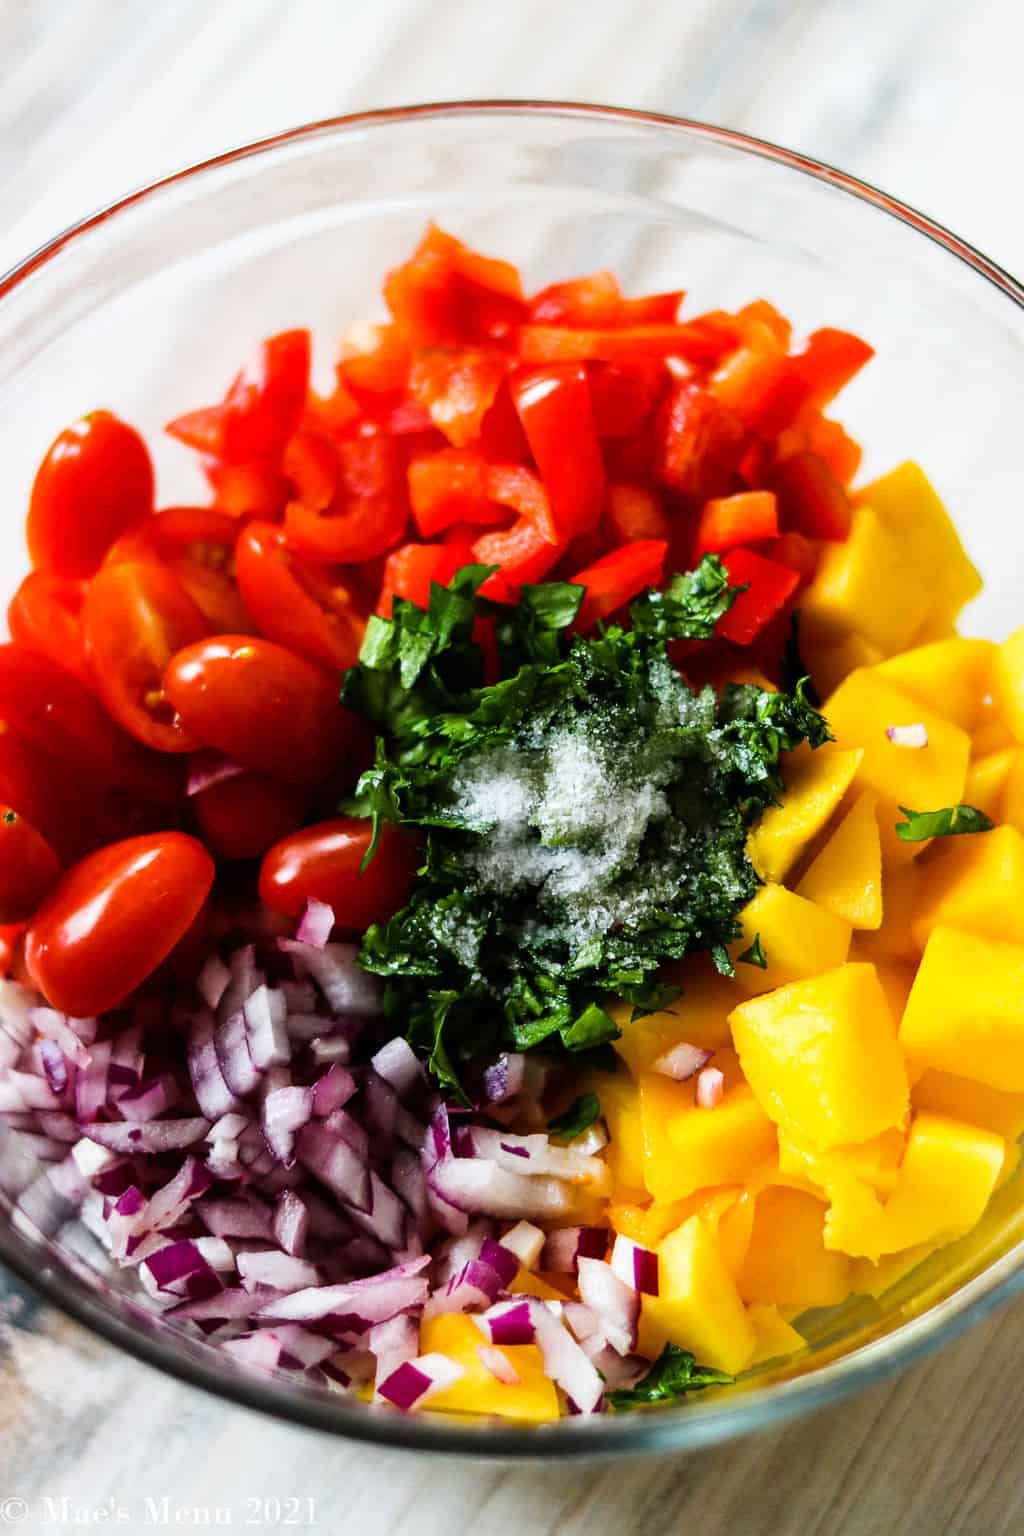 A mixing bowl with diced mango, tomatoes, red onio, red pepper, cilantro, and salt